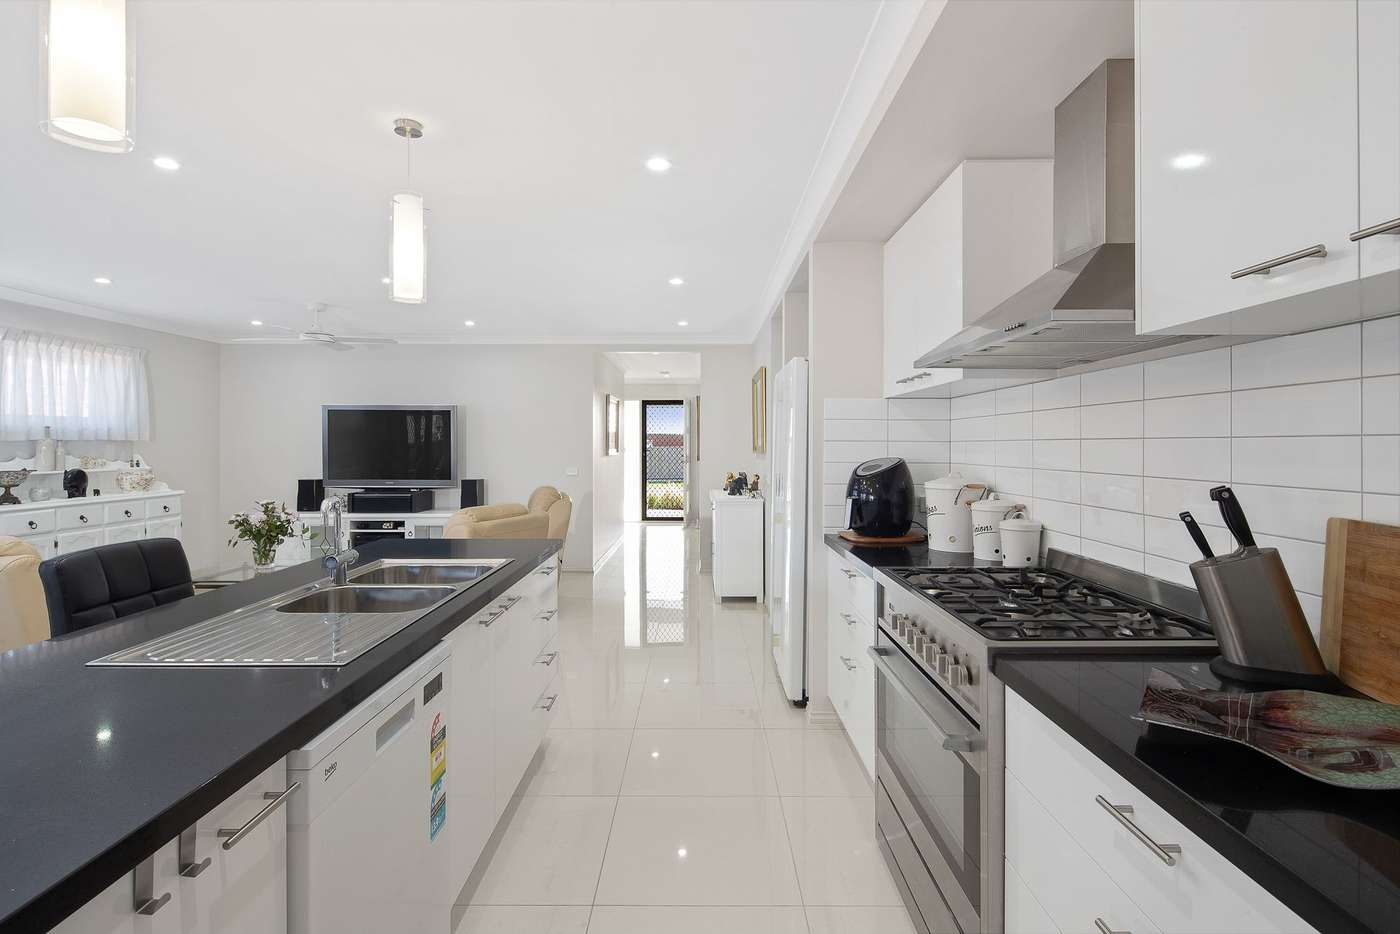 Sixth view of Homely house listing, 37 Seacrest Drive, Cowes VIC 3922